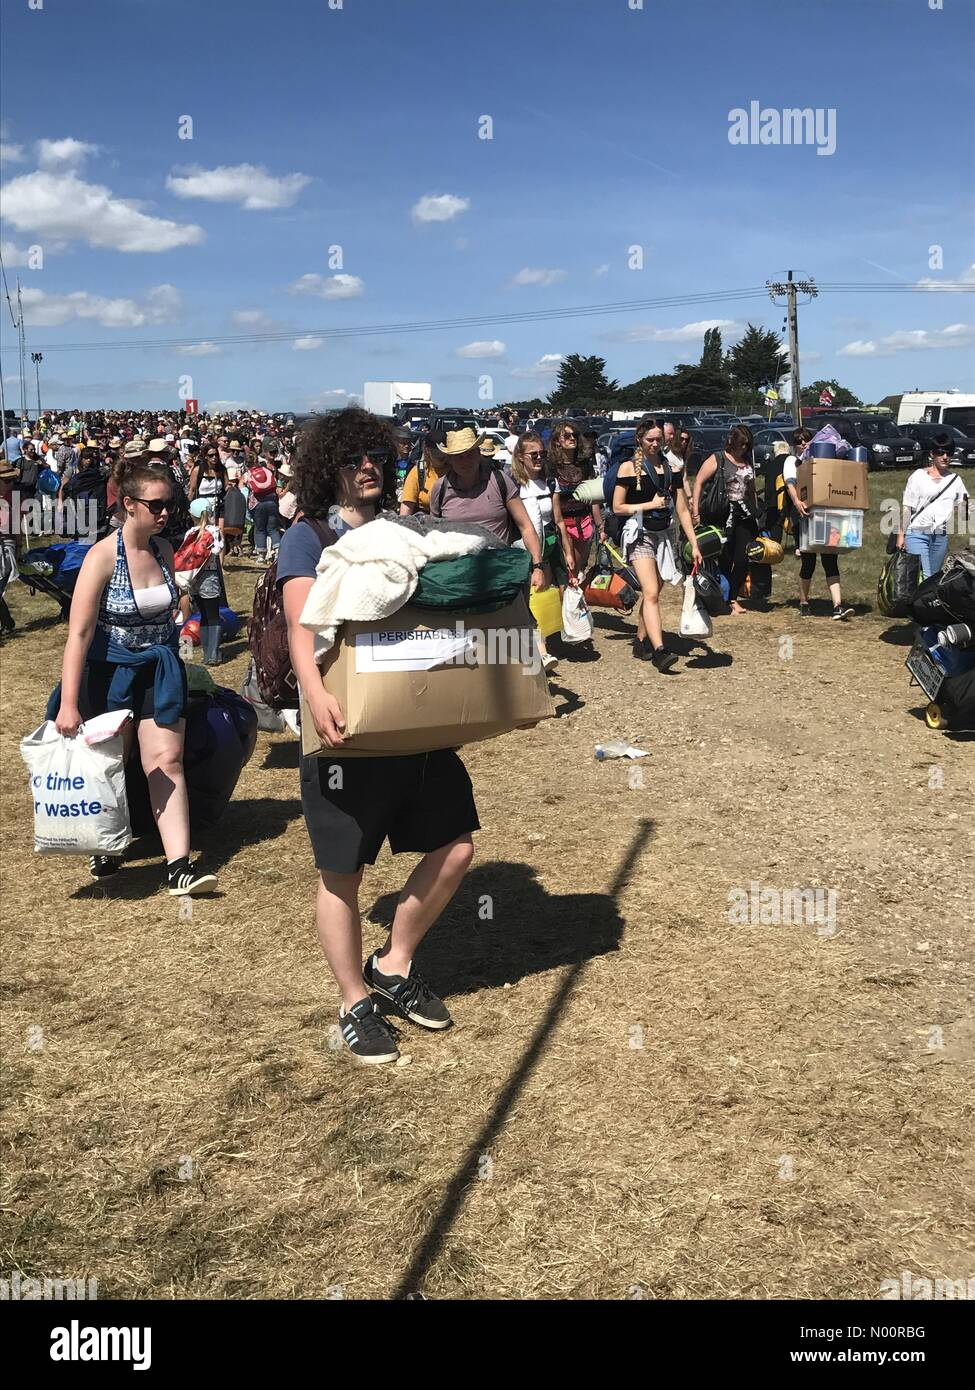 East Cowes, Newport, UK. 21st June, 2018. Seaport Close, Newport, Isle of Wight. 21st Jun, 2018. Festival-goers carry boxes and luggage after a long wait to enter the Festival site. Credit: amylaura/StockimoNews Credit: amylaura/StockimoNews/Alamy Live News - Stock Image